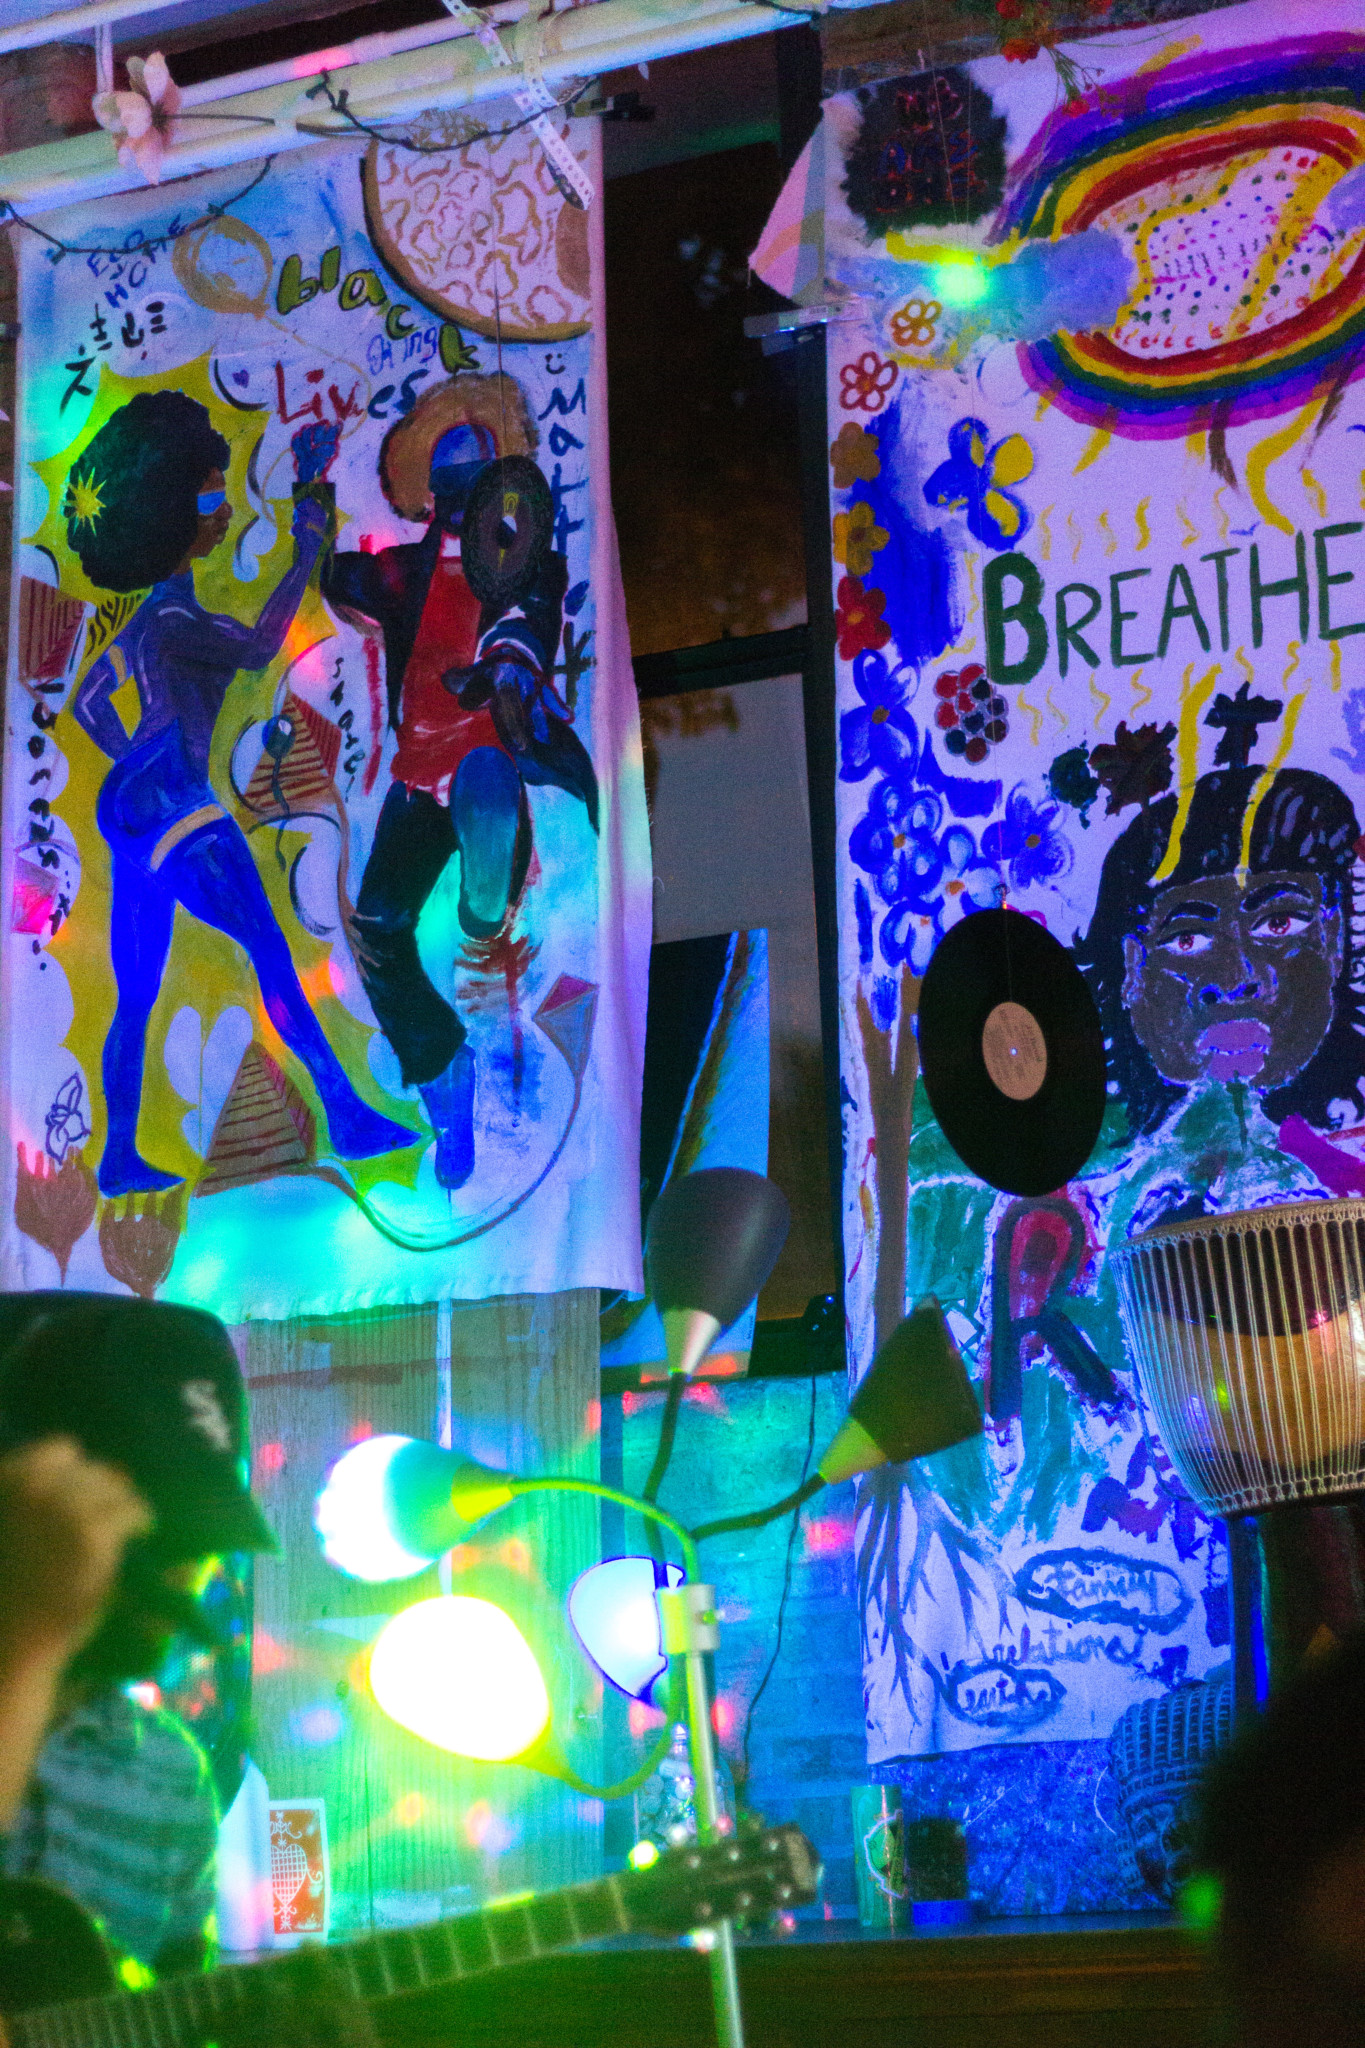 In addition to illumination by lights, the #BreathingRoom is also decorated with collaborative murals.